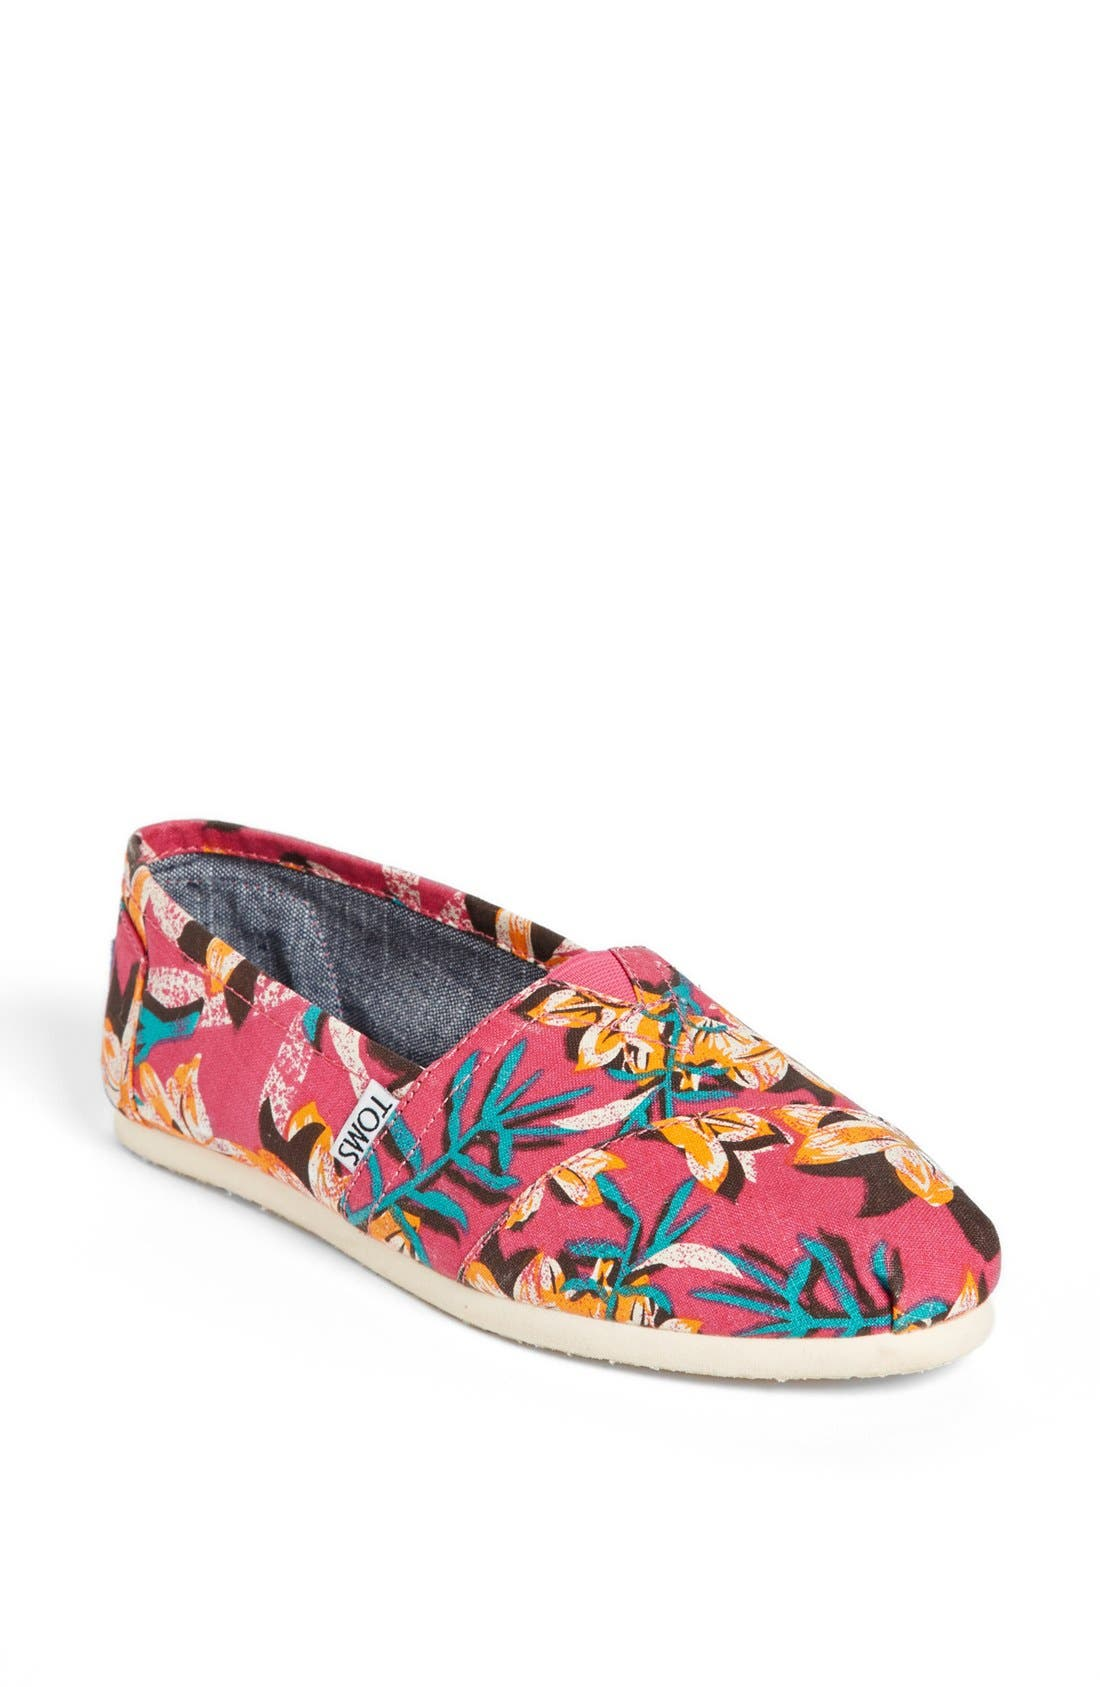 Alternate Image 1 Selected - TOMS 'Classic - Pink Floral' Vegan Slip-On (Women)